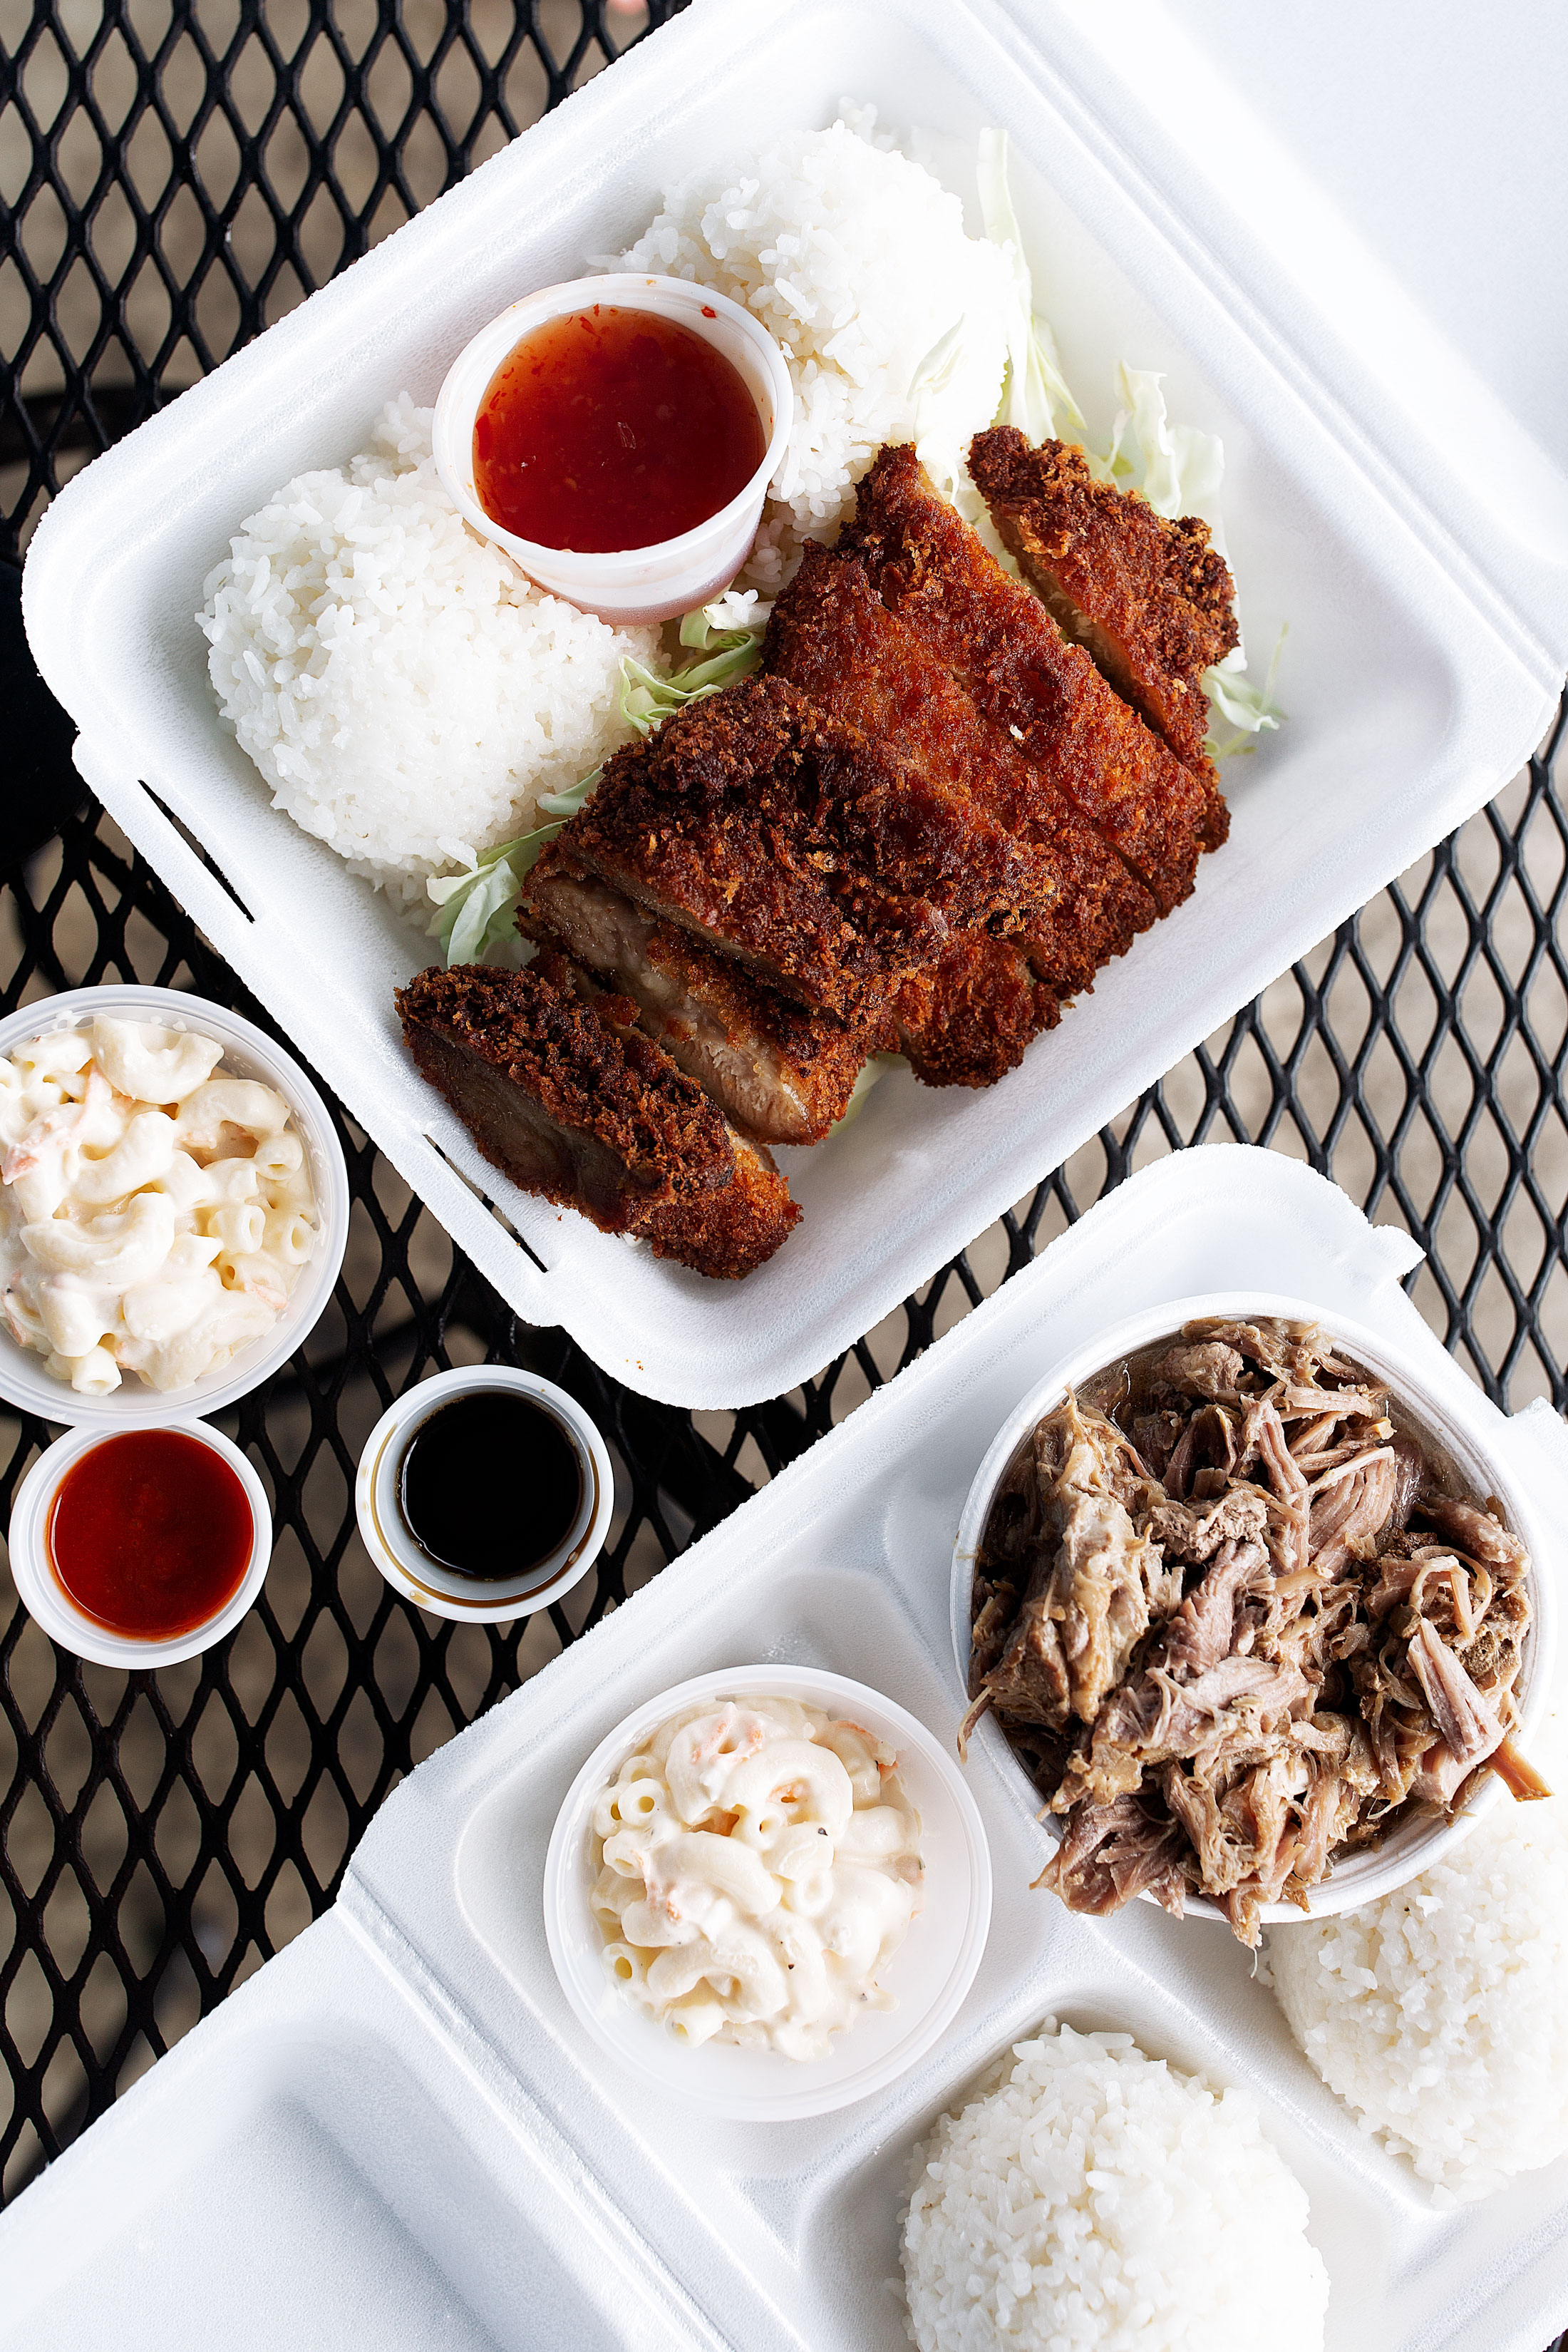 yama's fish market kalua pork and mochiko chicken cooking with cocktail rings travel hawaii